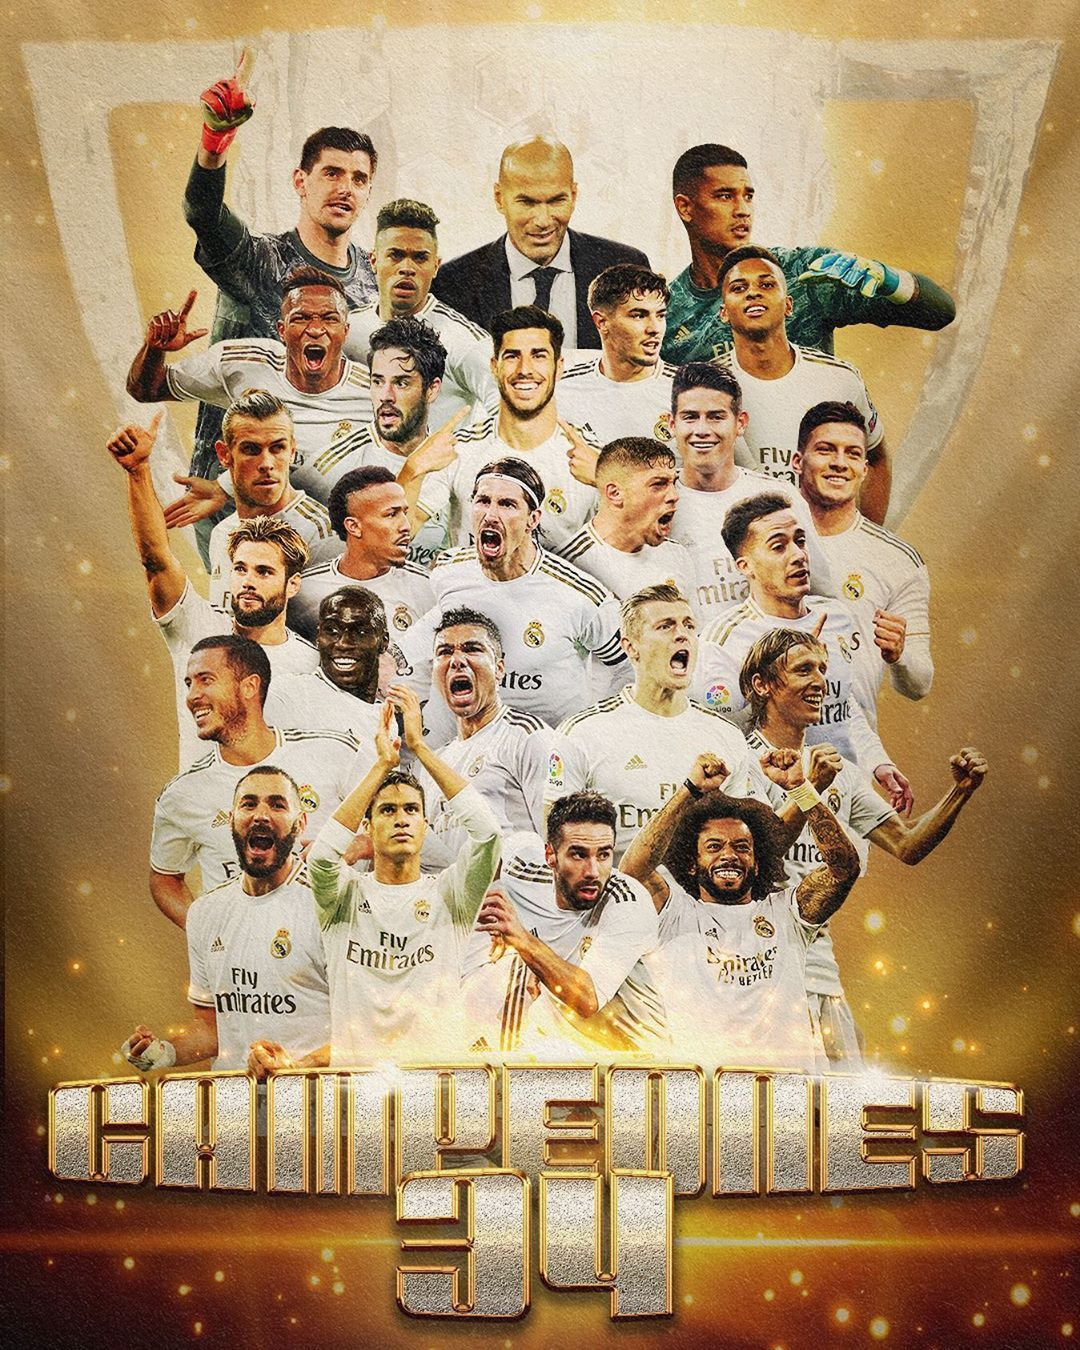 Real Madrid C F On Instagram We Are The Champions Somos Campeones Laliga 2019 20 34ligas Realfootba In 2020 Real Madrid Real Madrid Wallpapers Madrid